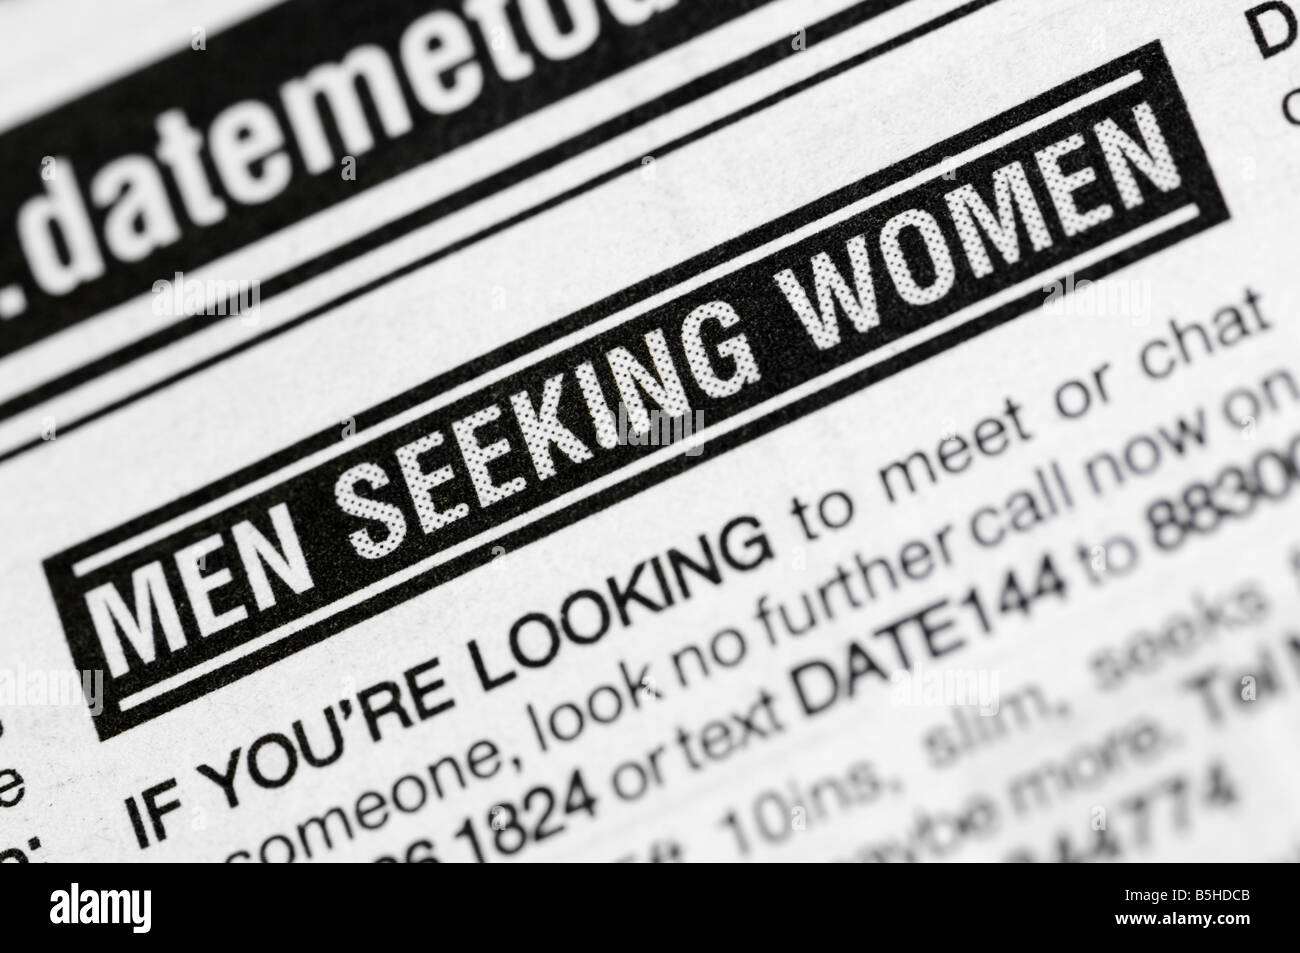 Classified men seeking women